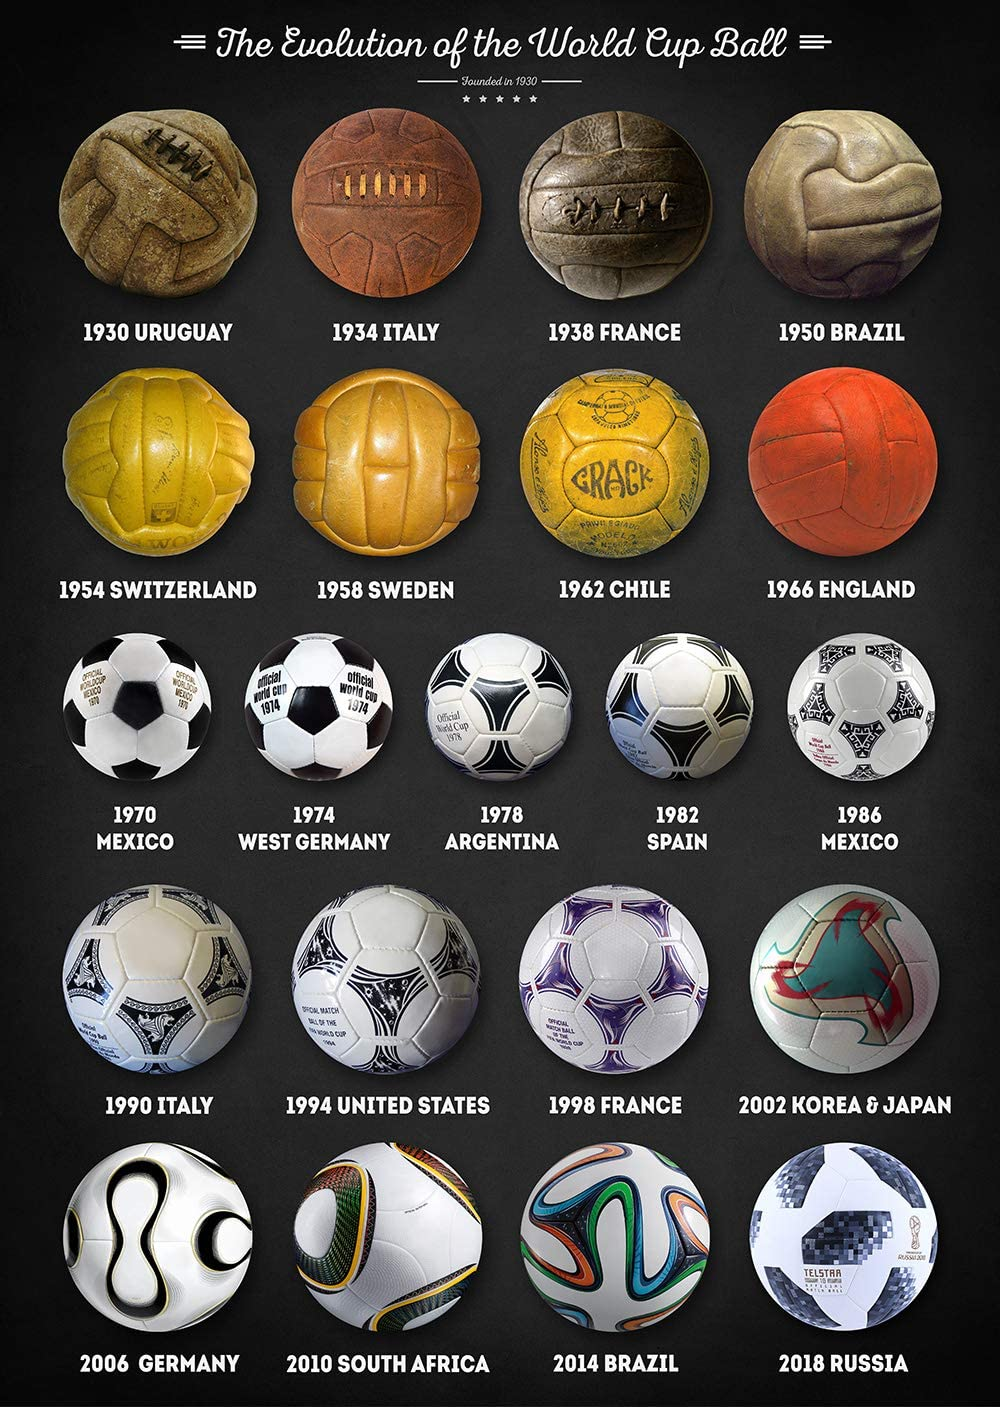 World Cup Balls Collage Art Print Soccer History Poster Football Gifts Home Wall Decor Unframed 8 50 X 12 Posters Prints